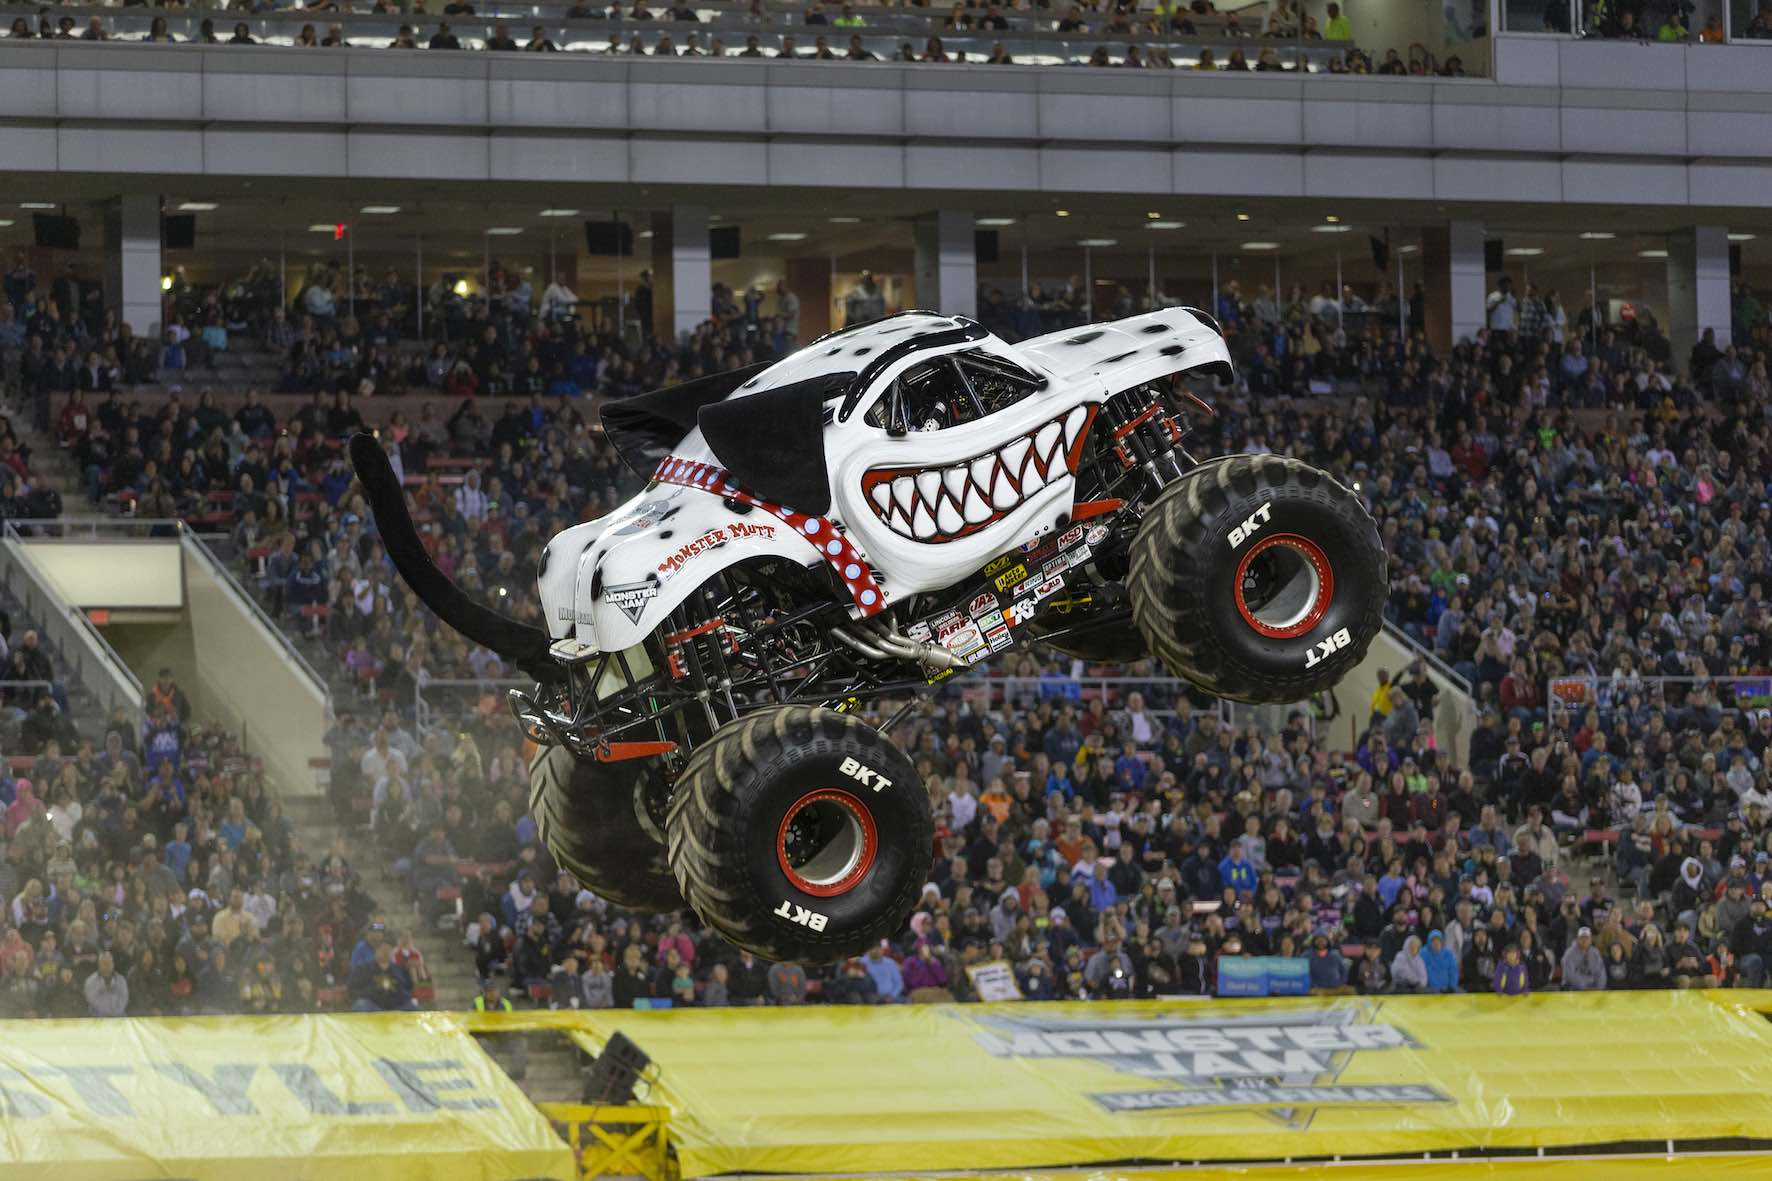 The Monster Mutt Dalmatian Monster Truck is set to perform at Monster Jam in South Africa